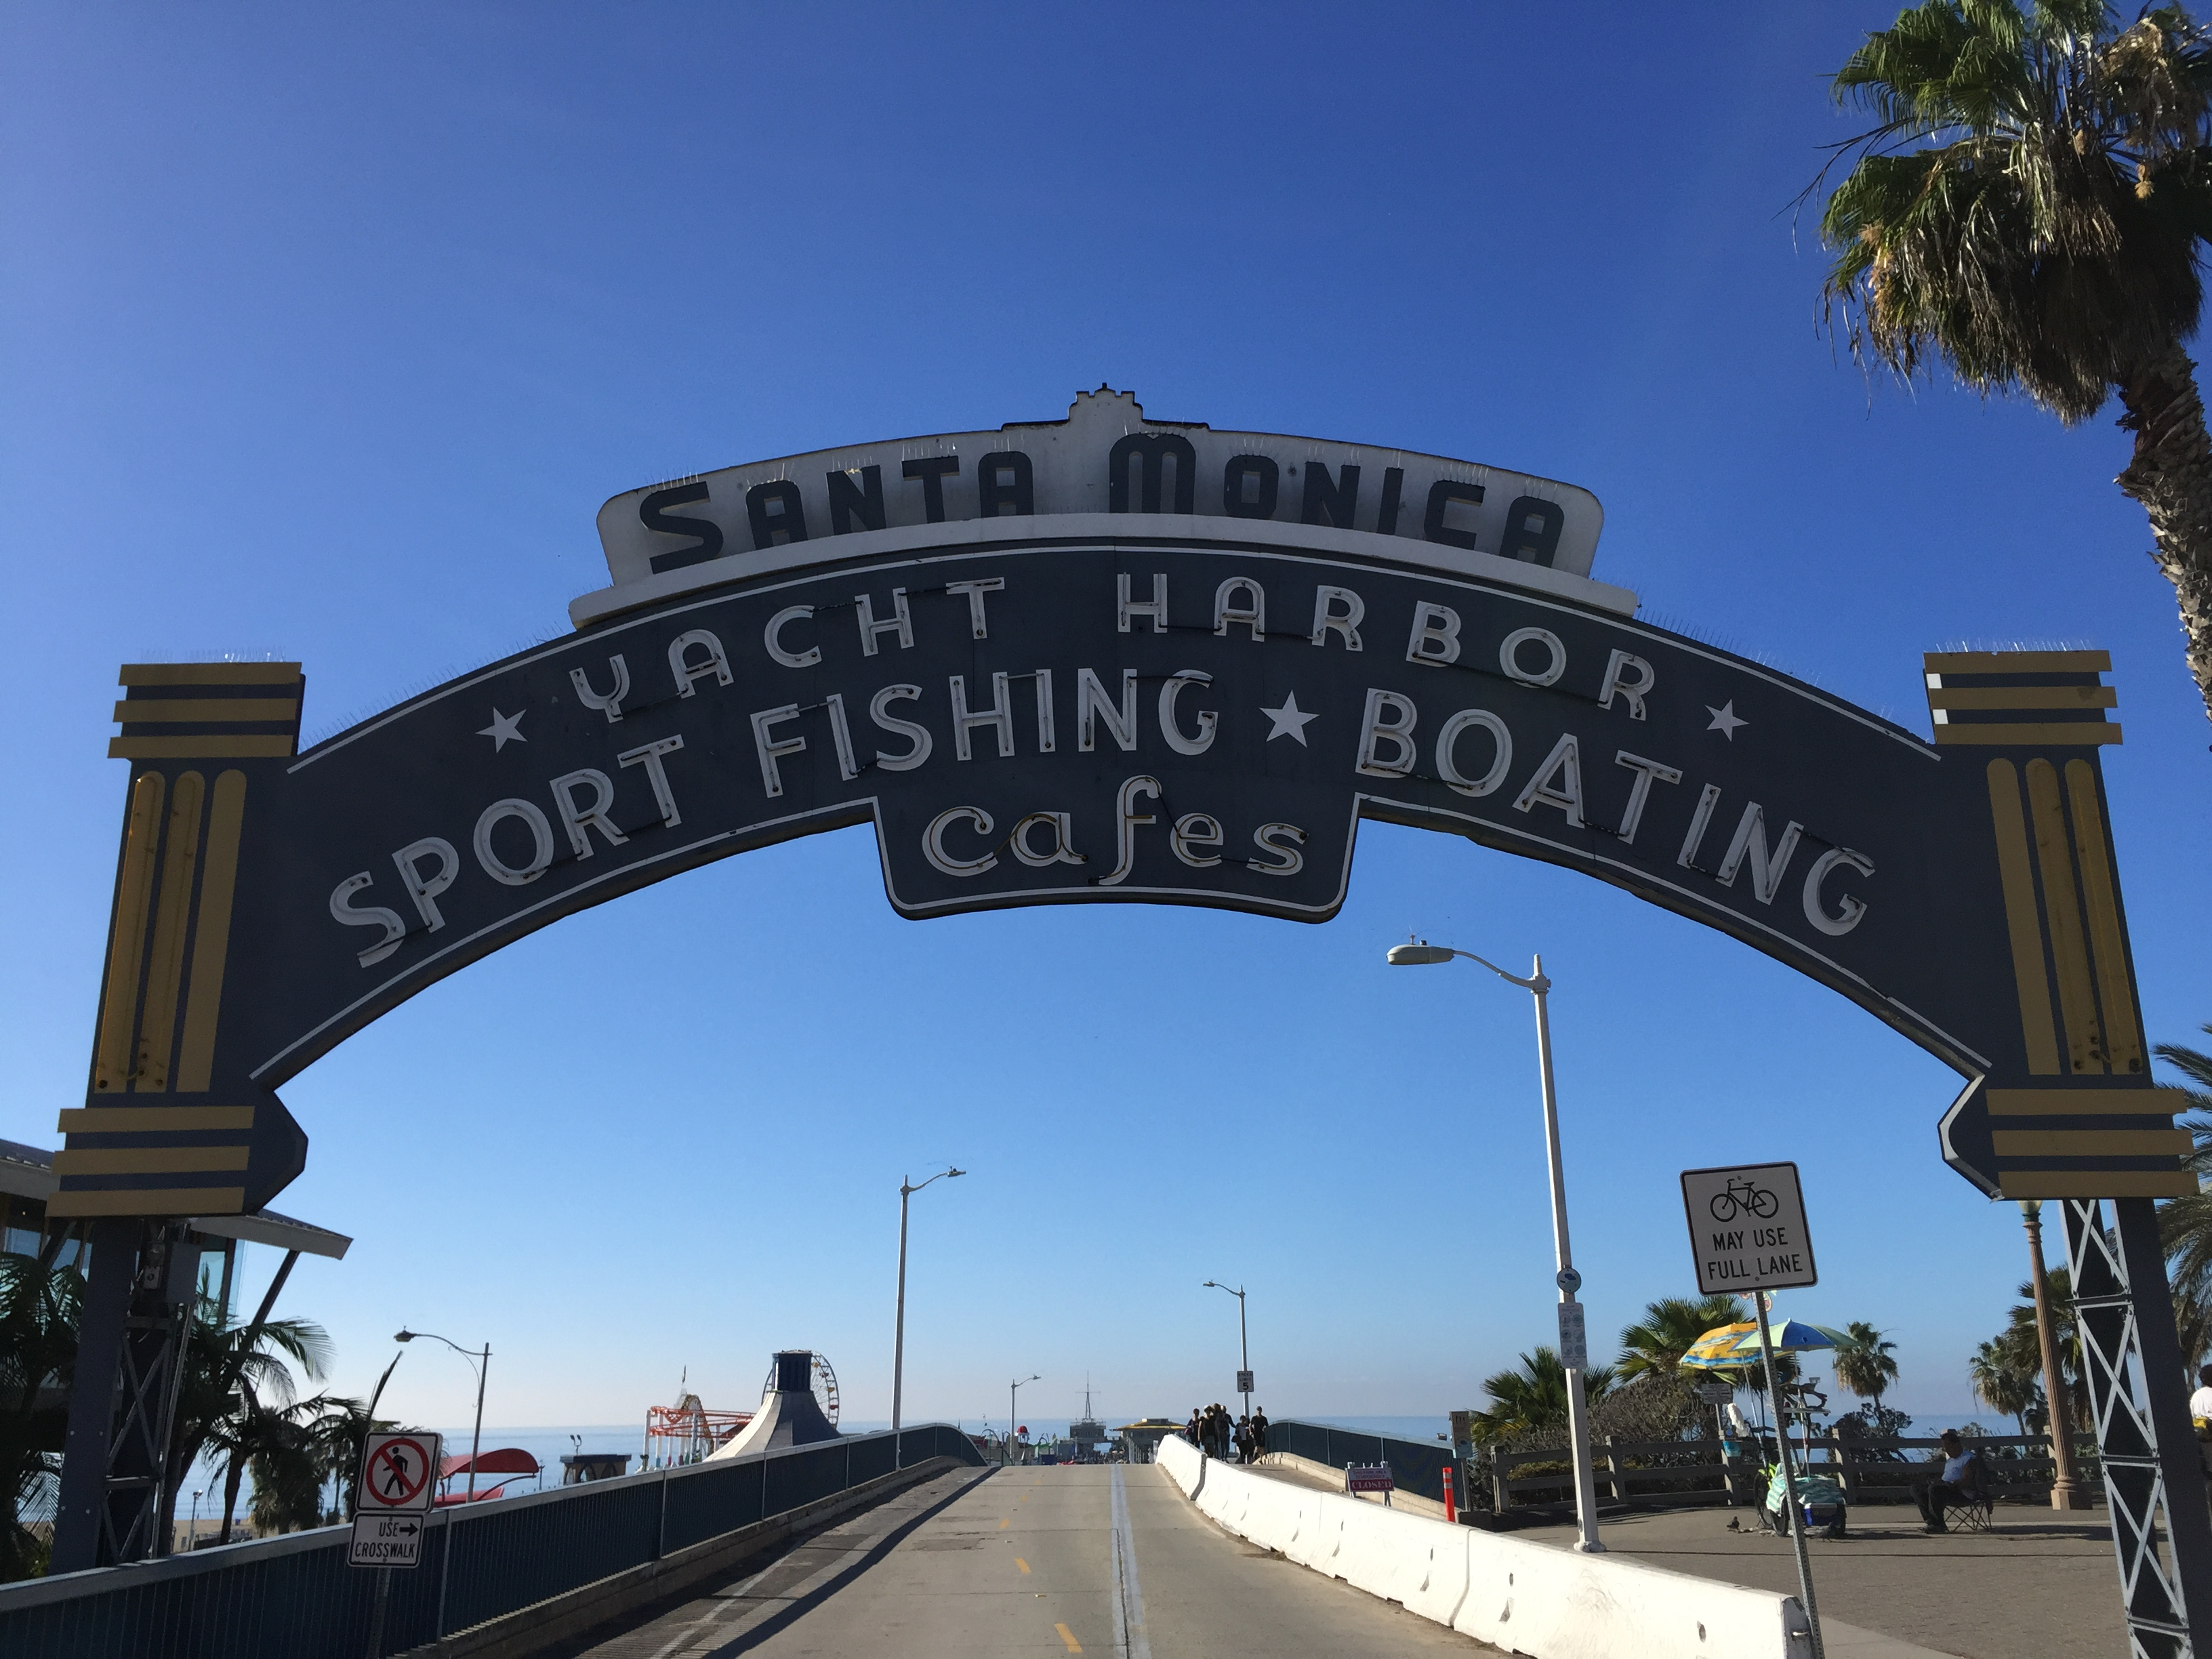 Introducing Santa Monica Yacht Club